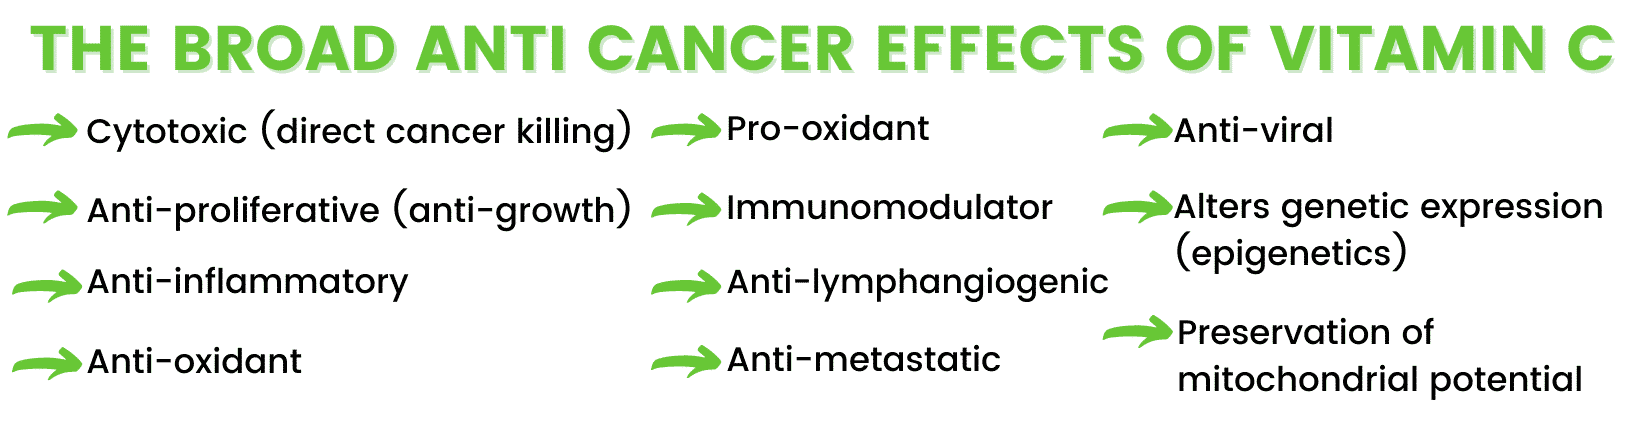 vitamin c dosing for treating cancer